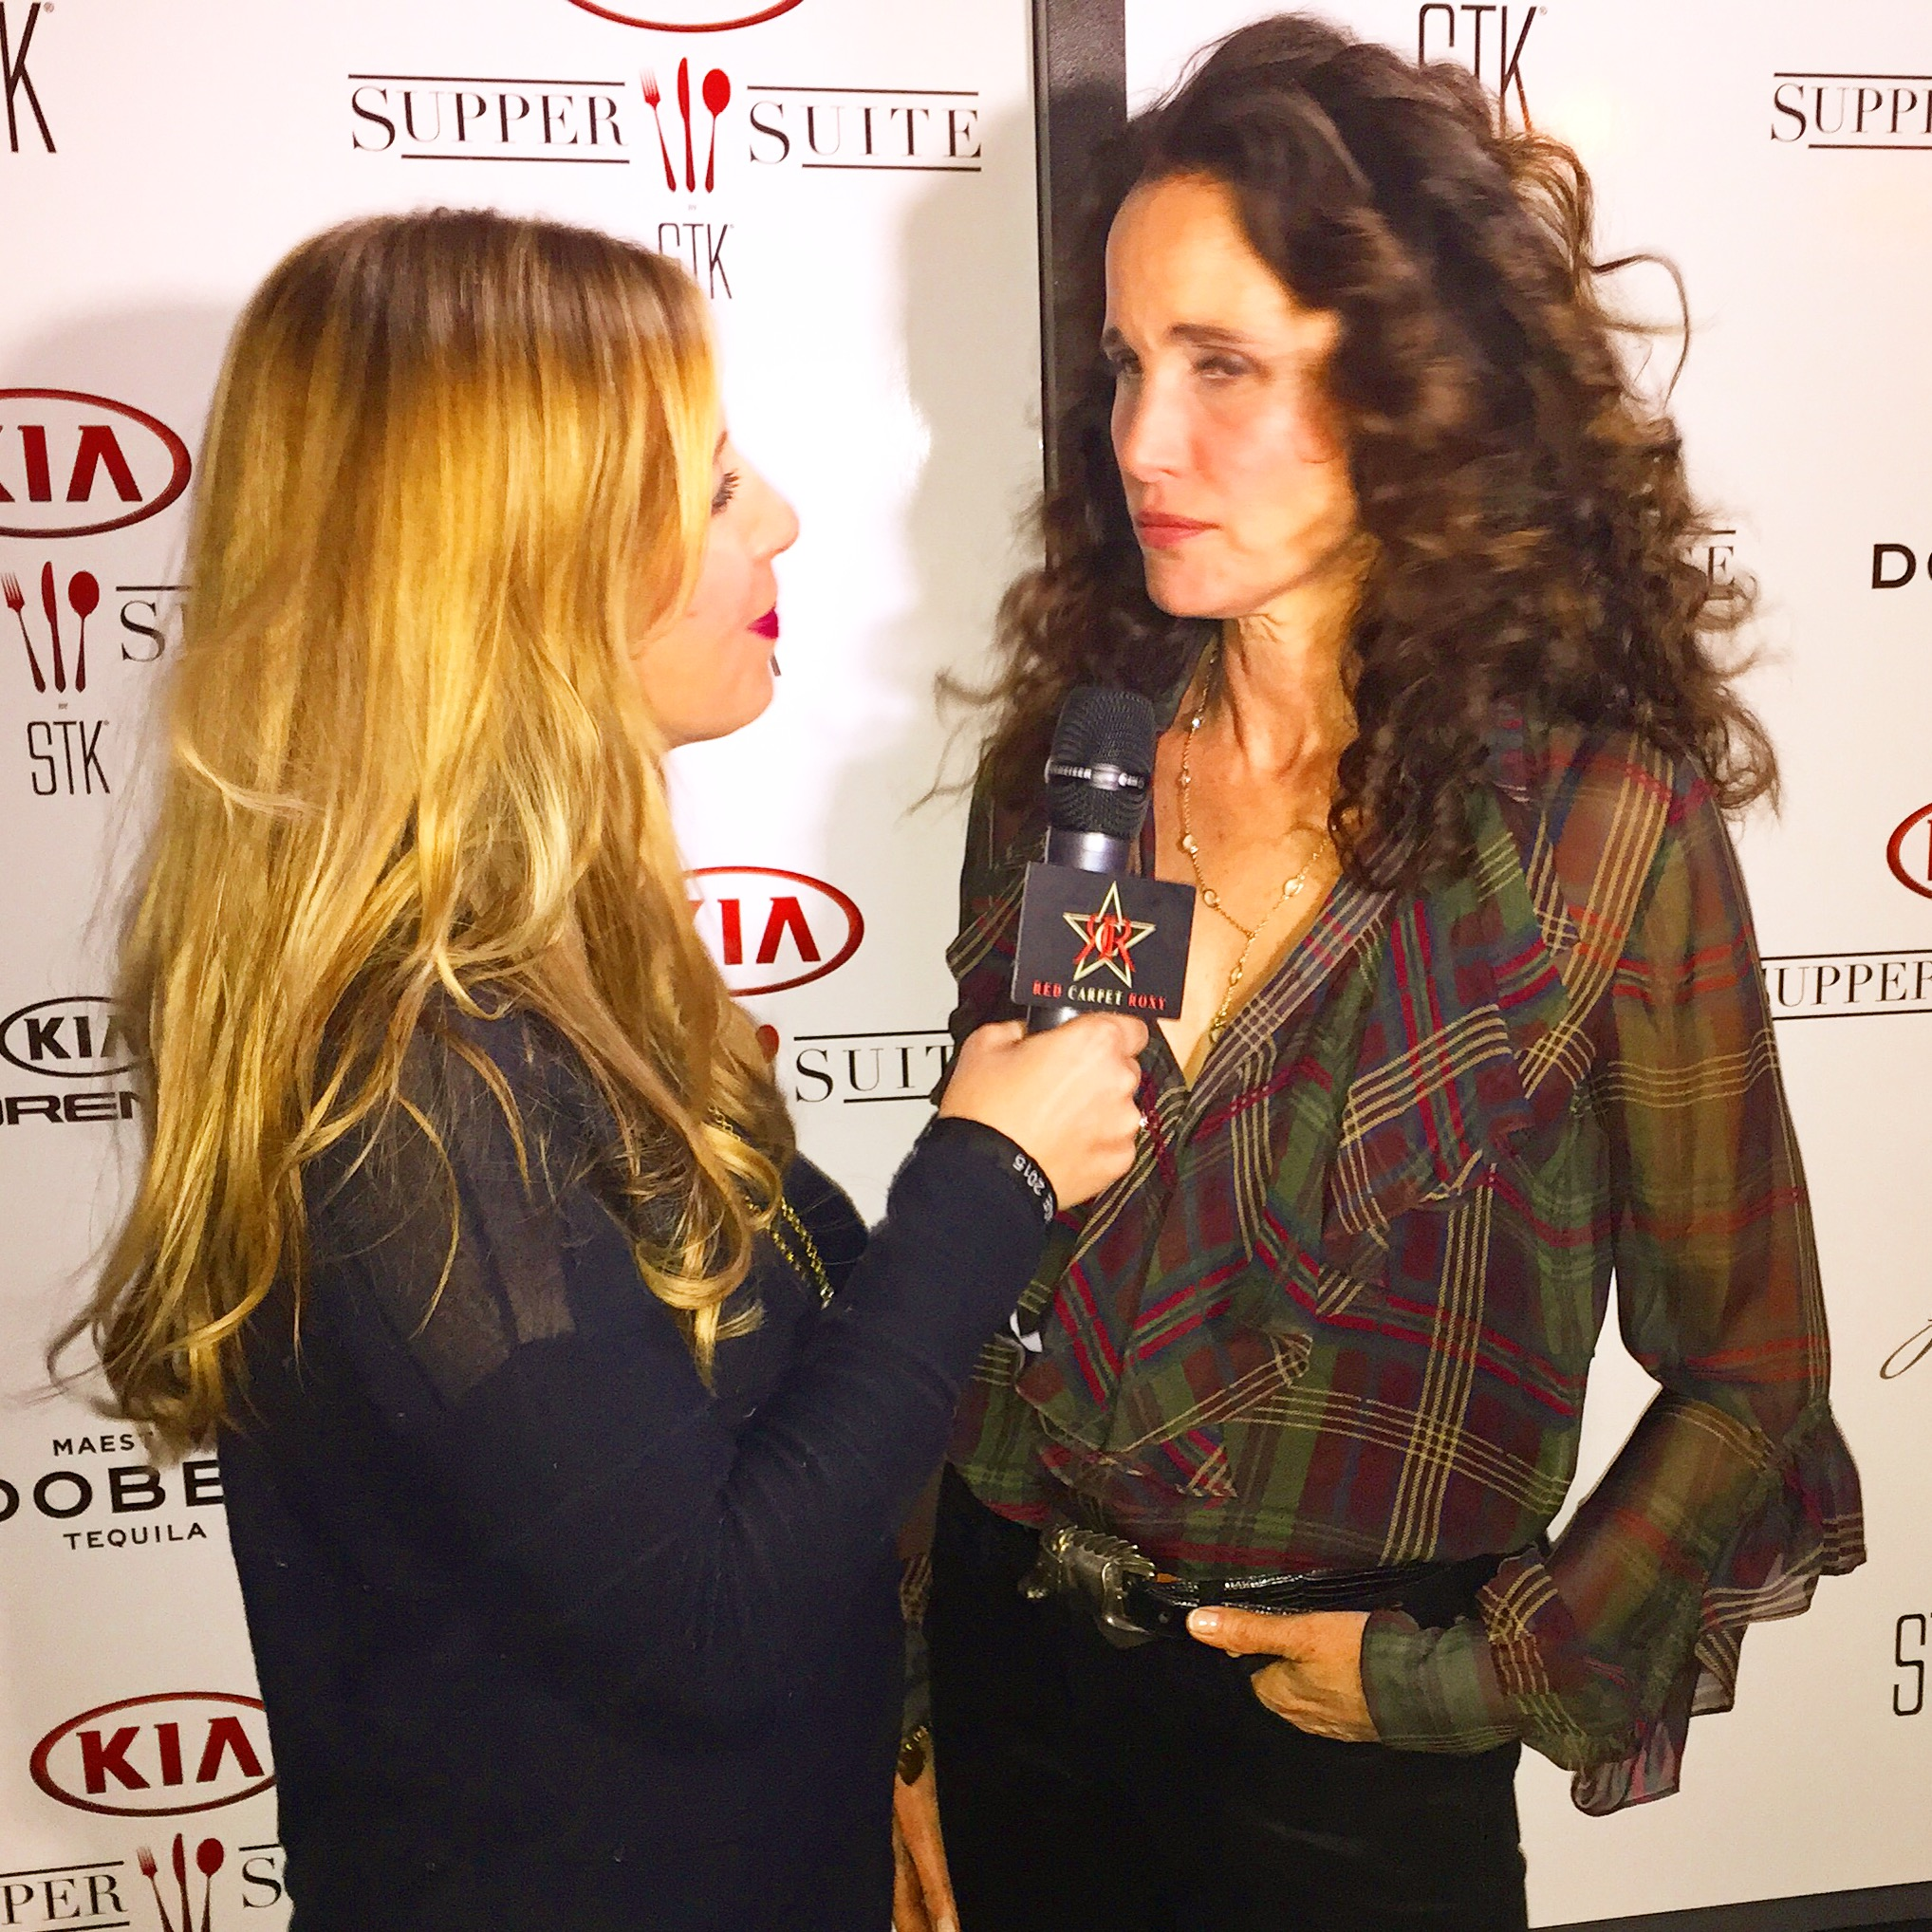 Chatting with Andie MacDowell at the KIA Supper Suite by STK during Sundance 2015